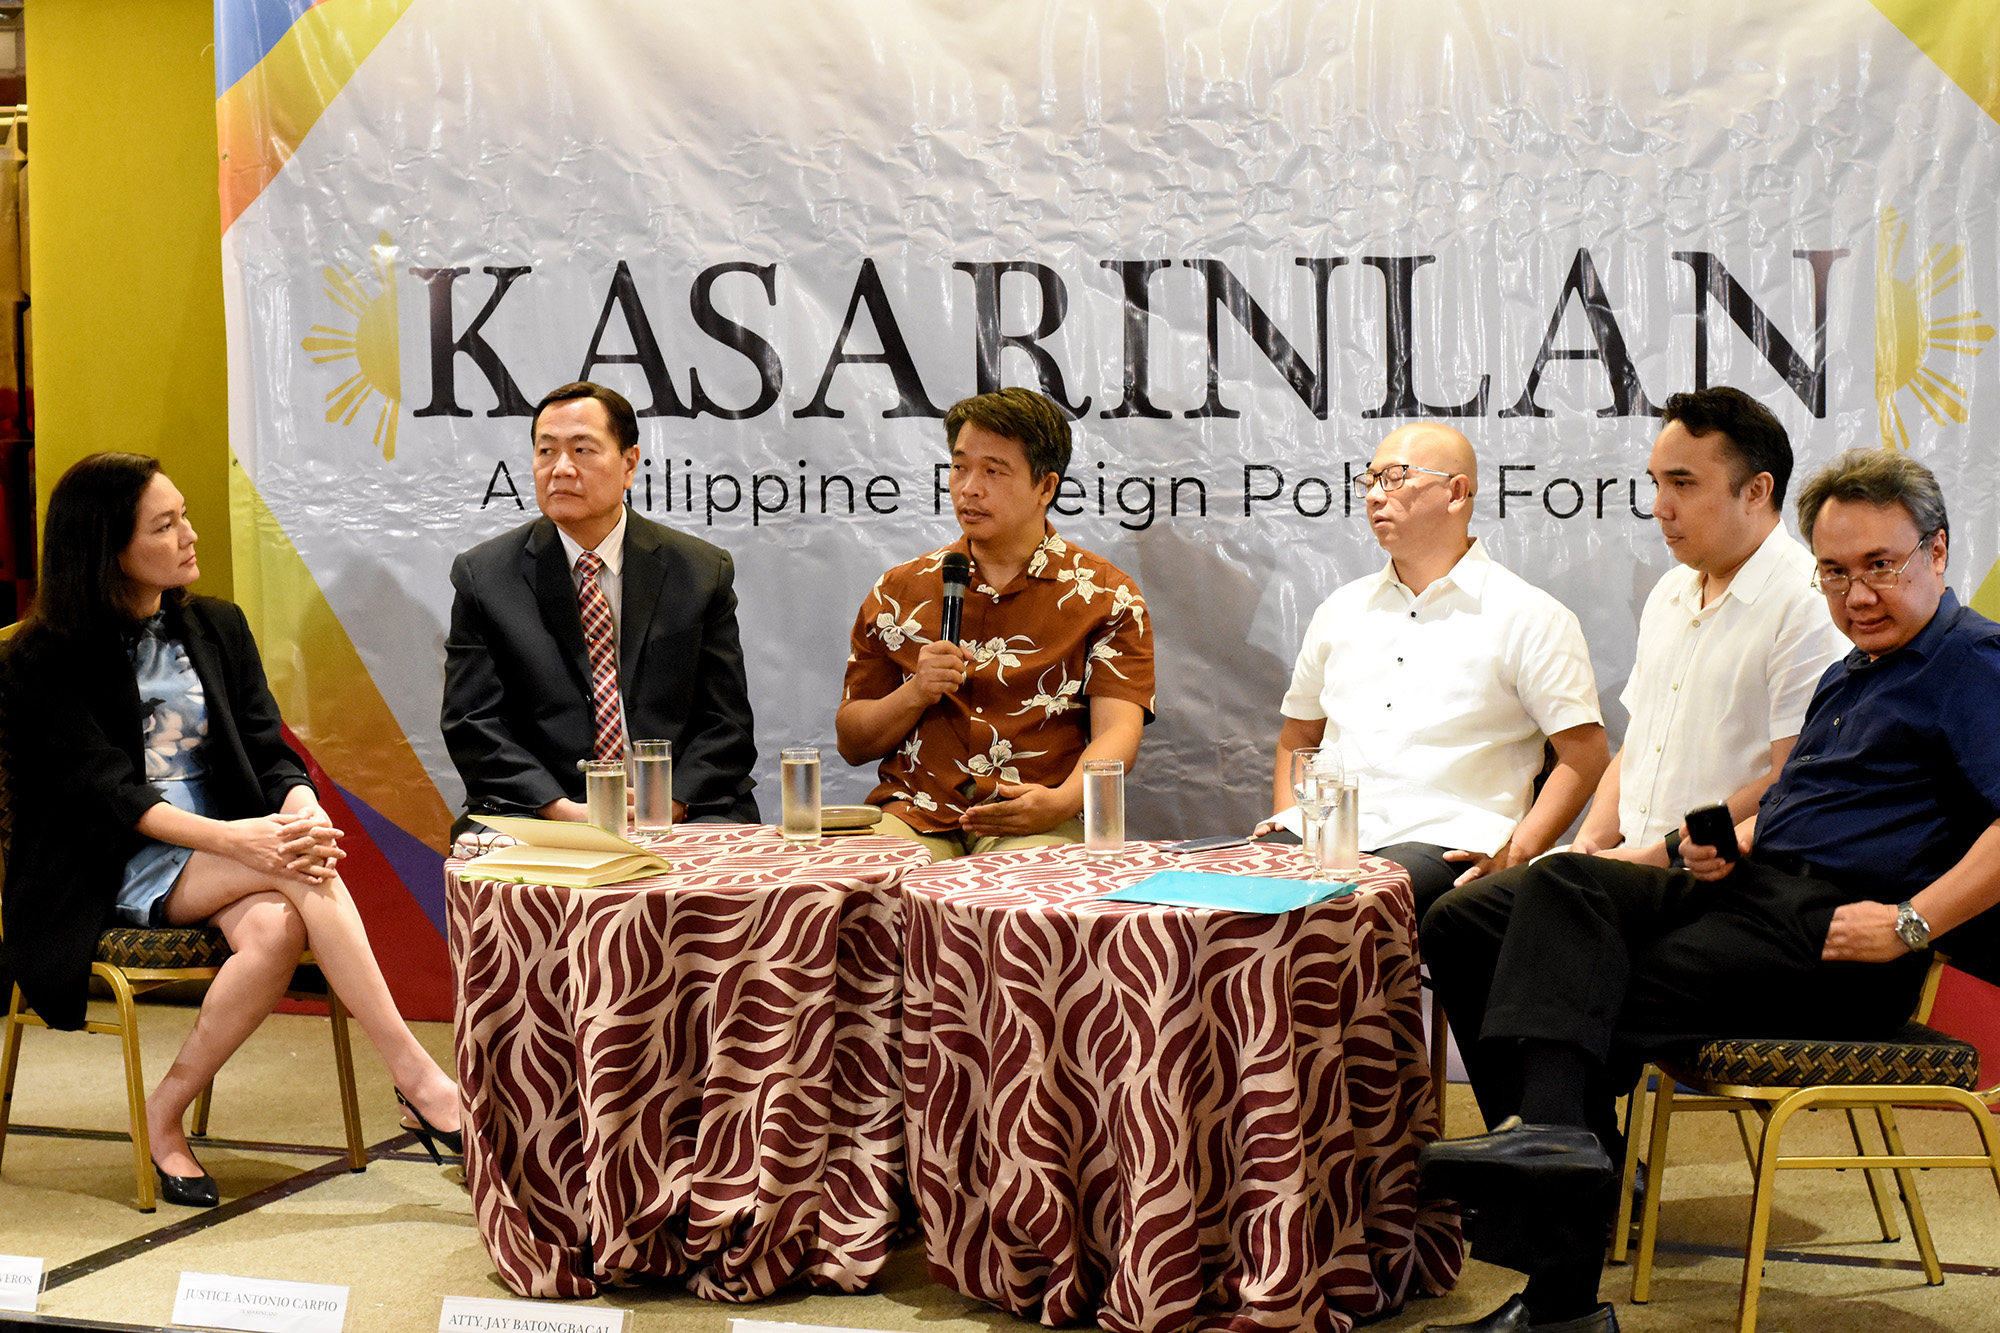 'KASARINLAN' FORUM. Senator Risa Hontiveros, Acting Chief Justice Antonio Carpio, maritime law expert Jay Batongbacal, former solicitor general Florin Hilbay, former Akbayan party-list representative Barry Gutierrez, and military historian Jose Custodio (left to right) speak at the 'Kasarinlan' foreign policy forum on July 9, 2018. Photo by Angie de Silva/Rappler